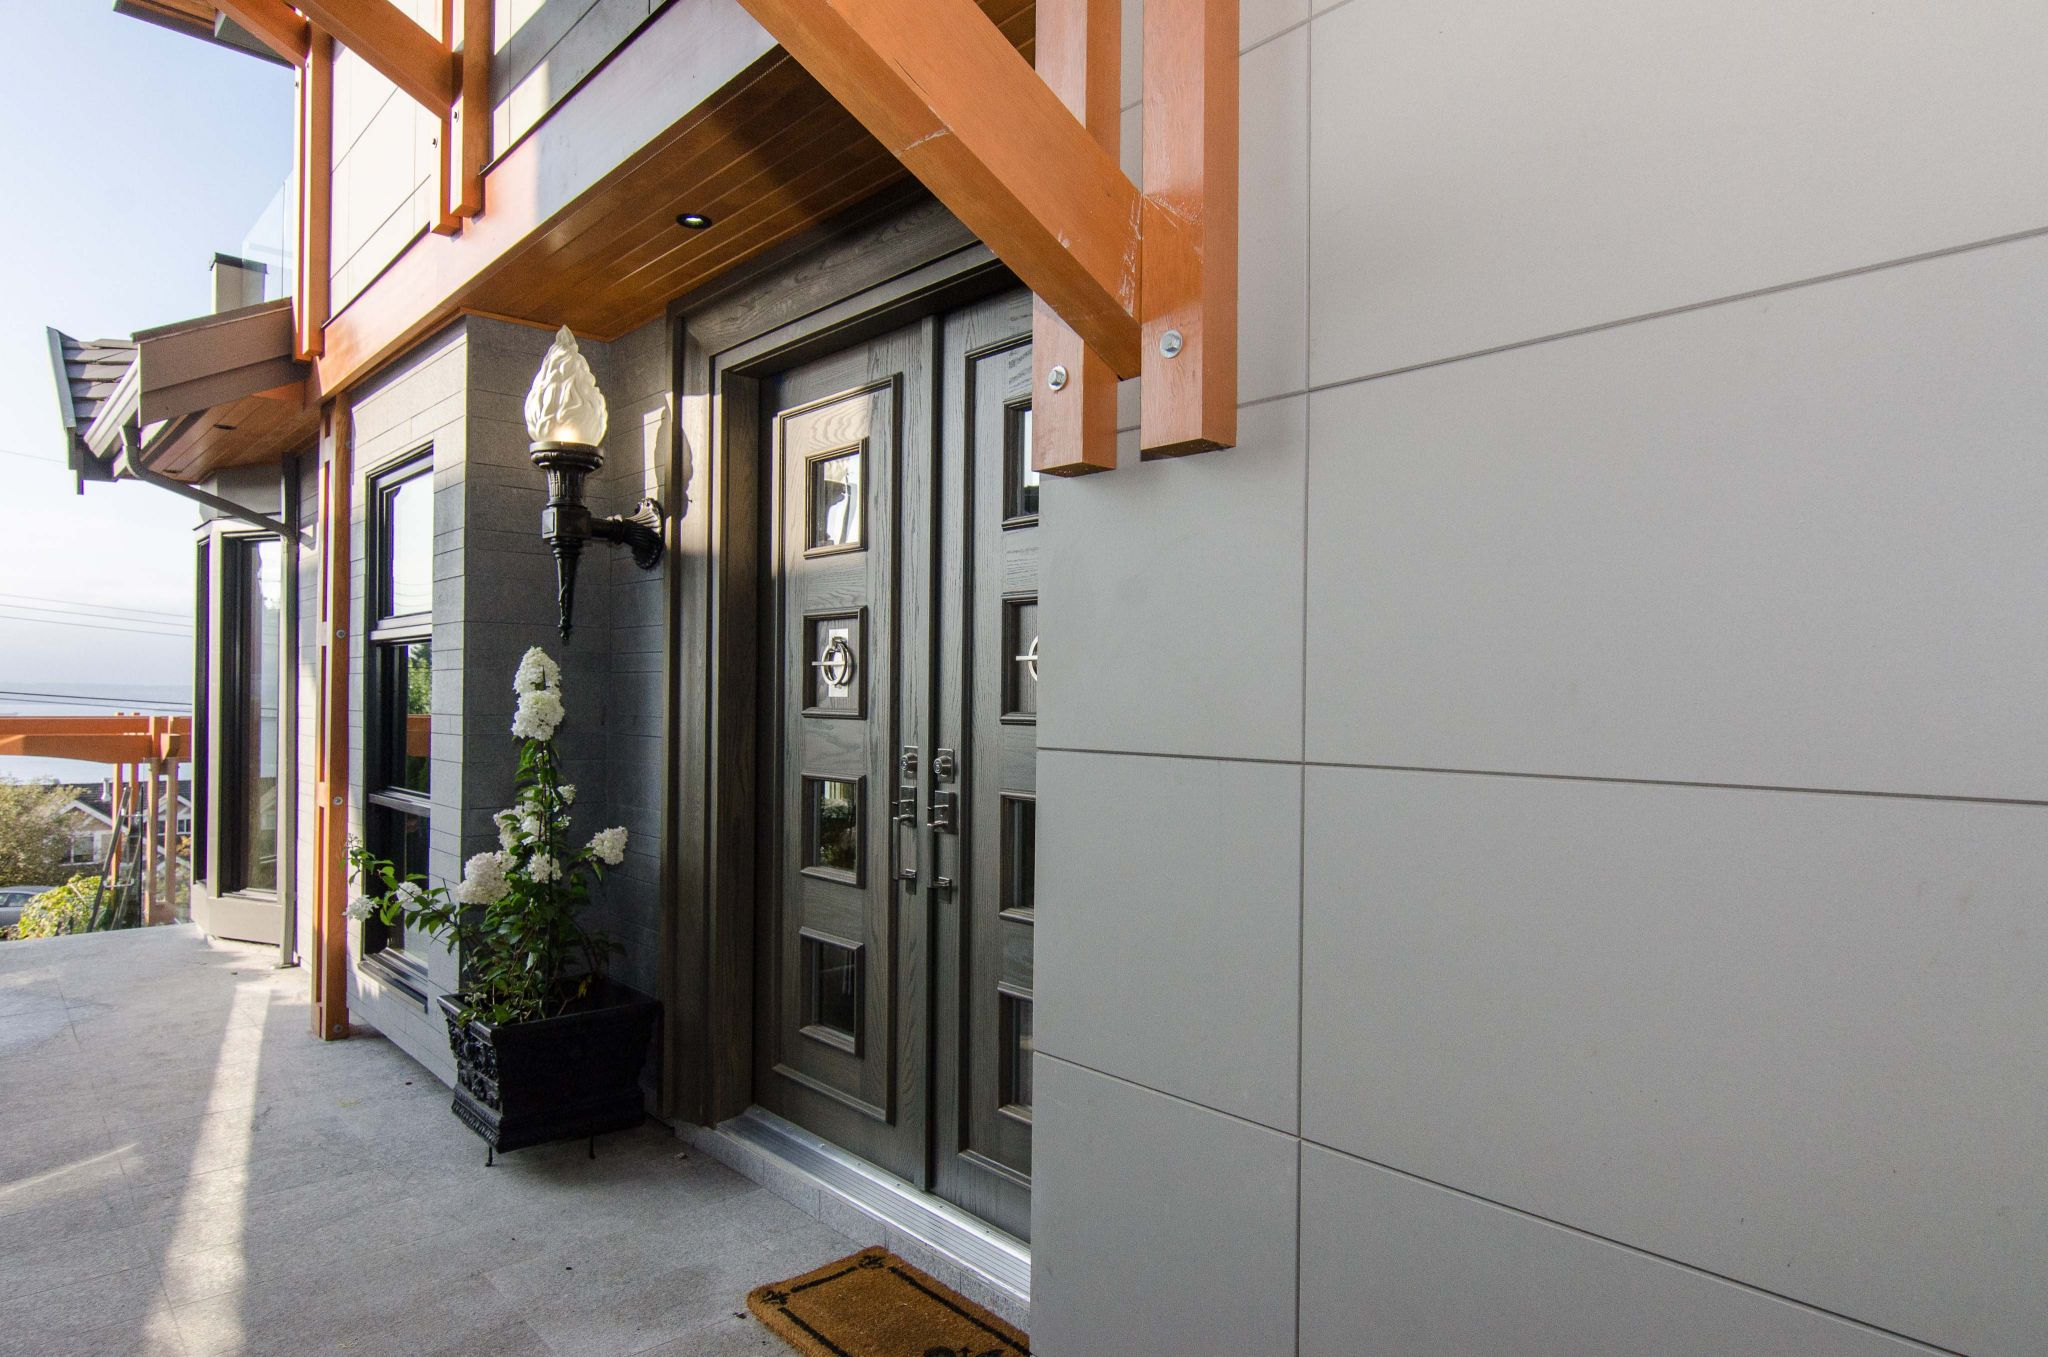 Specifying Fibre Cement For A High End Home Construction